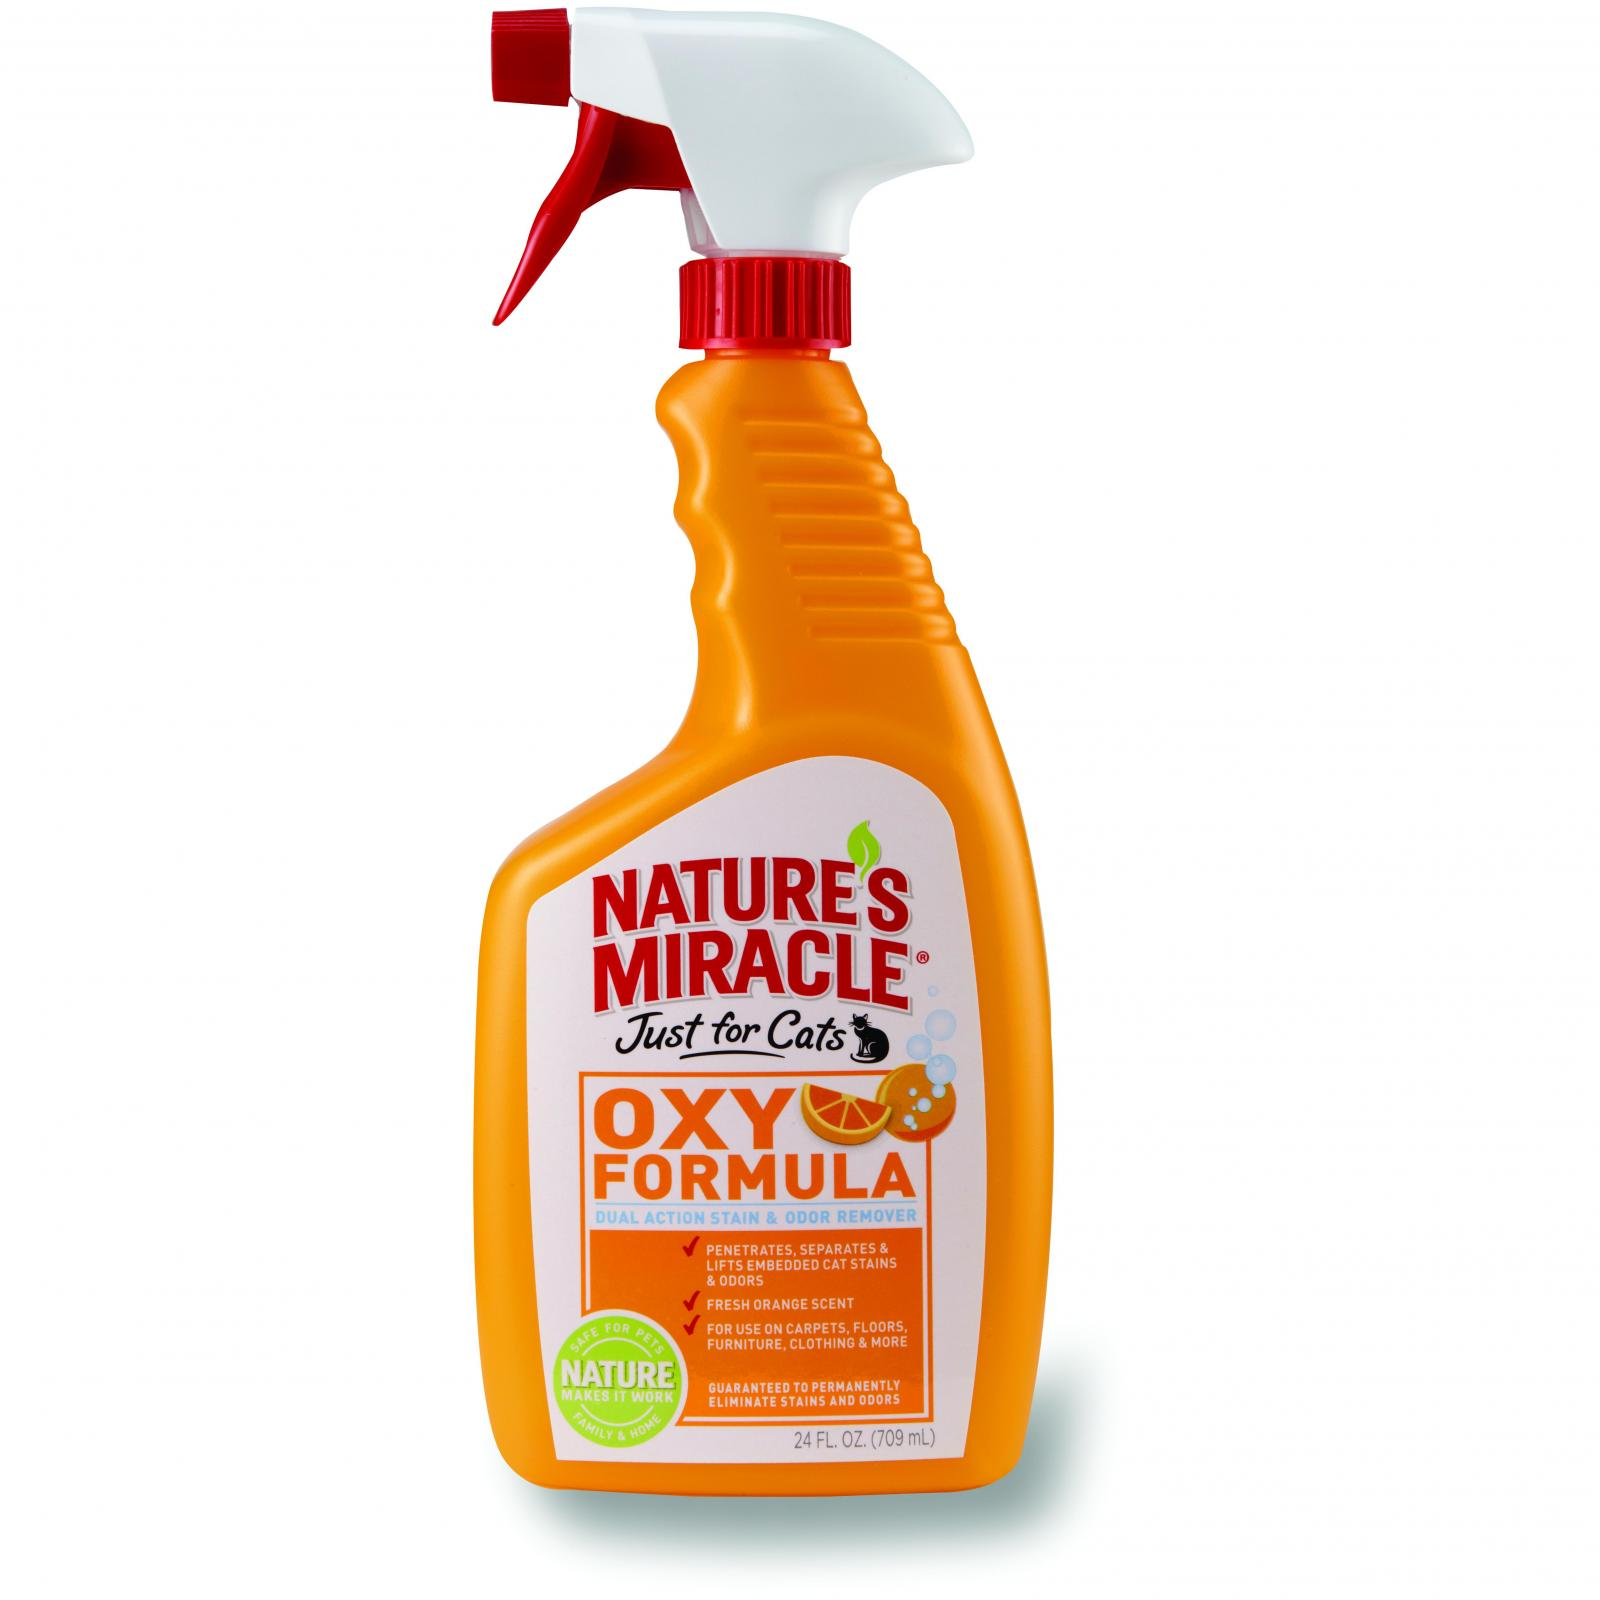 Natures Miracle Nature's Miracle Oxy Orange Just For Cats 709ml